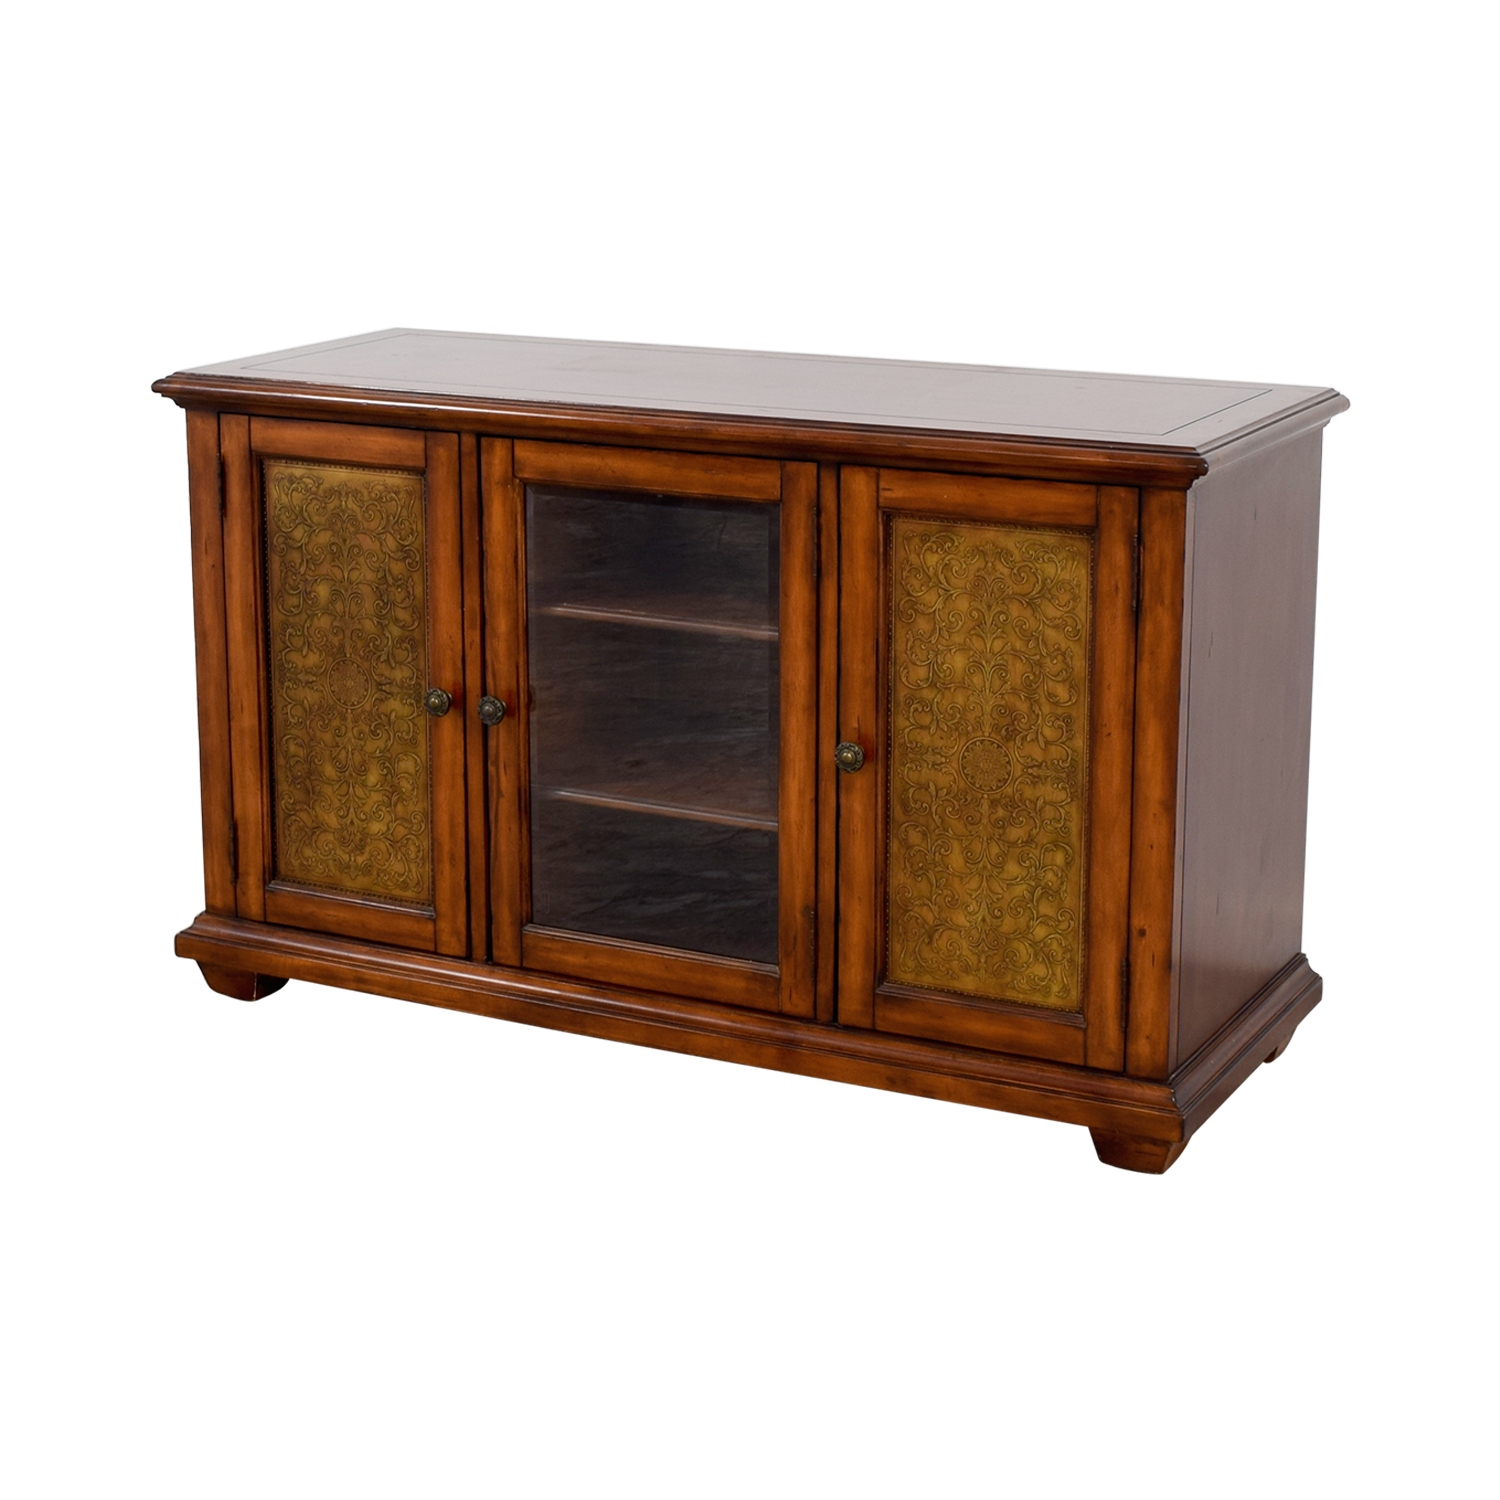 Hooker Furniture Media Console with Brass in Distressed Wood Finish sale